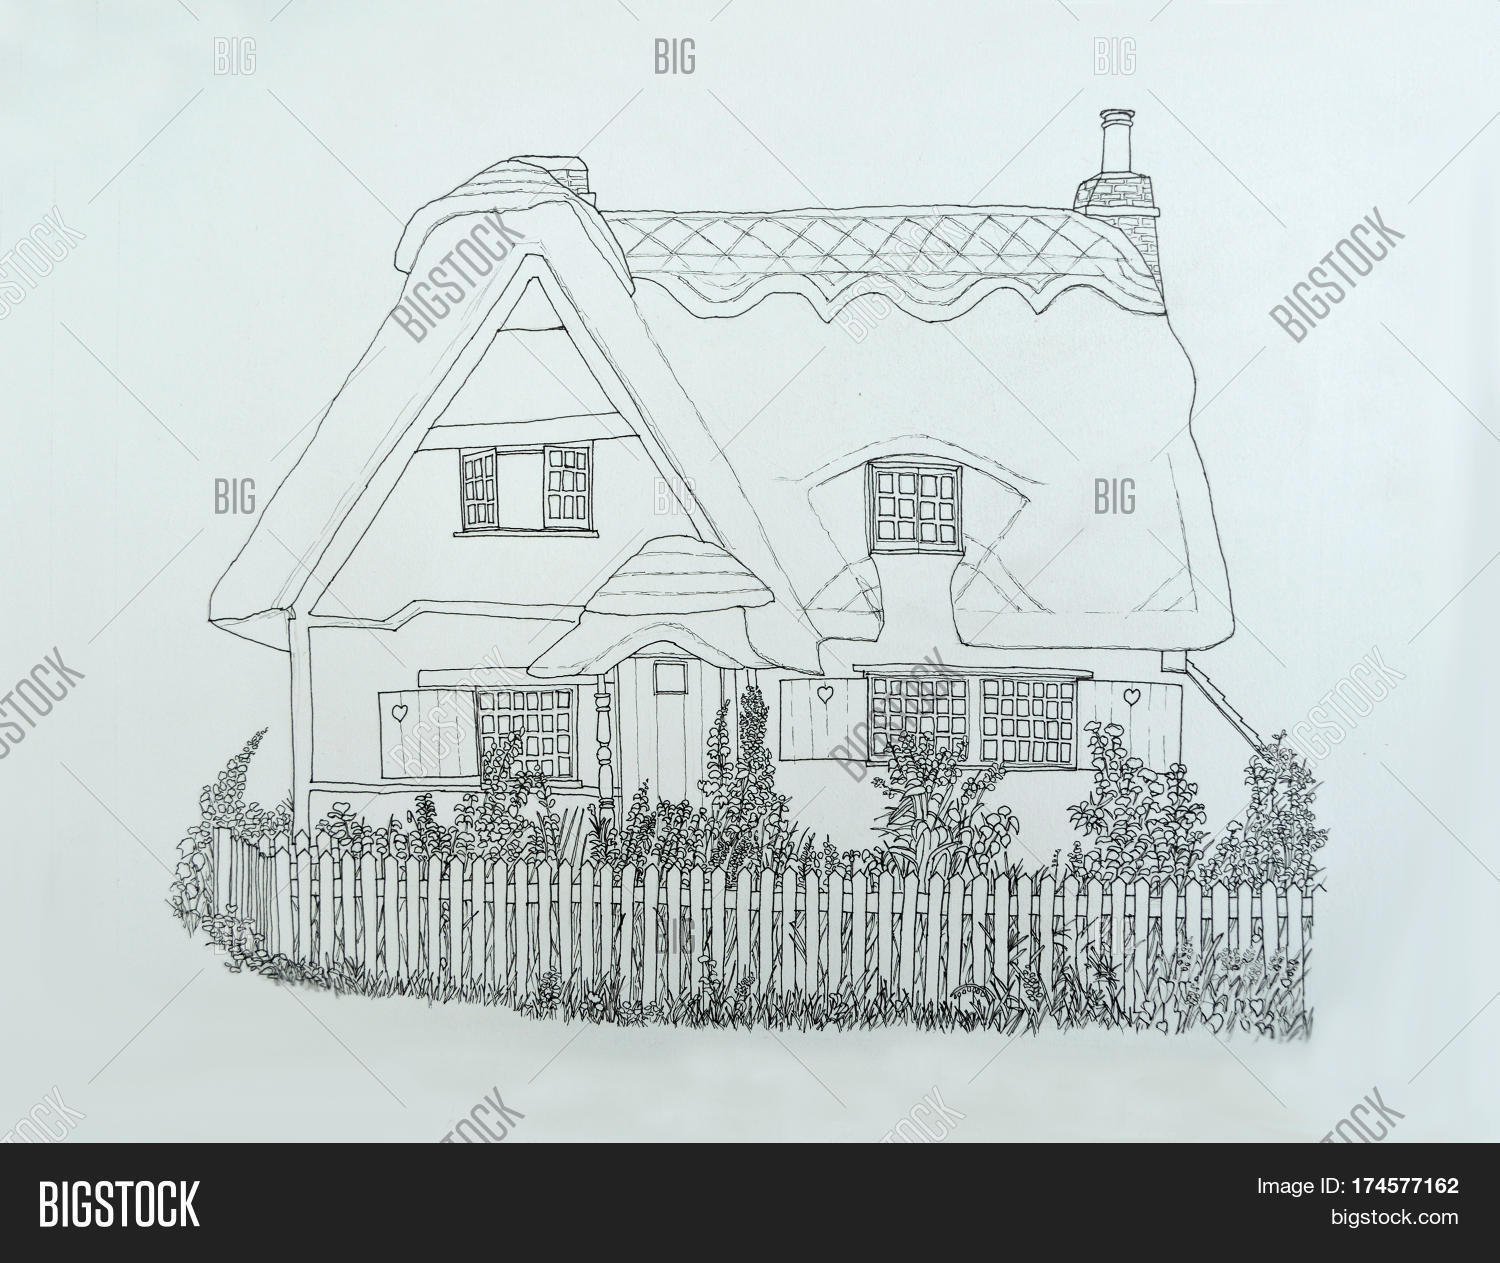 Ink Line Drawing Of English Thatched Cottage With Picket Fence And Garden